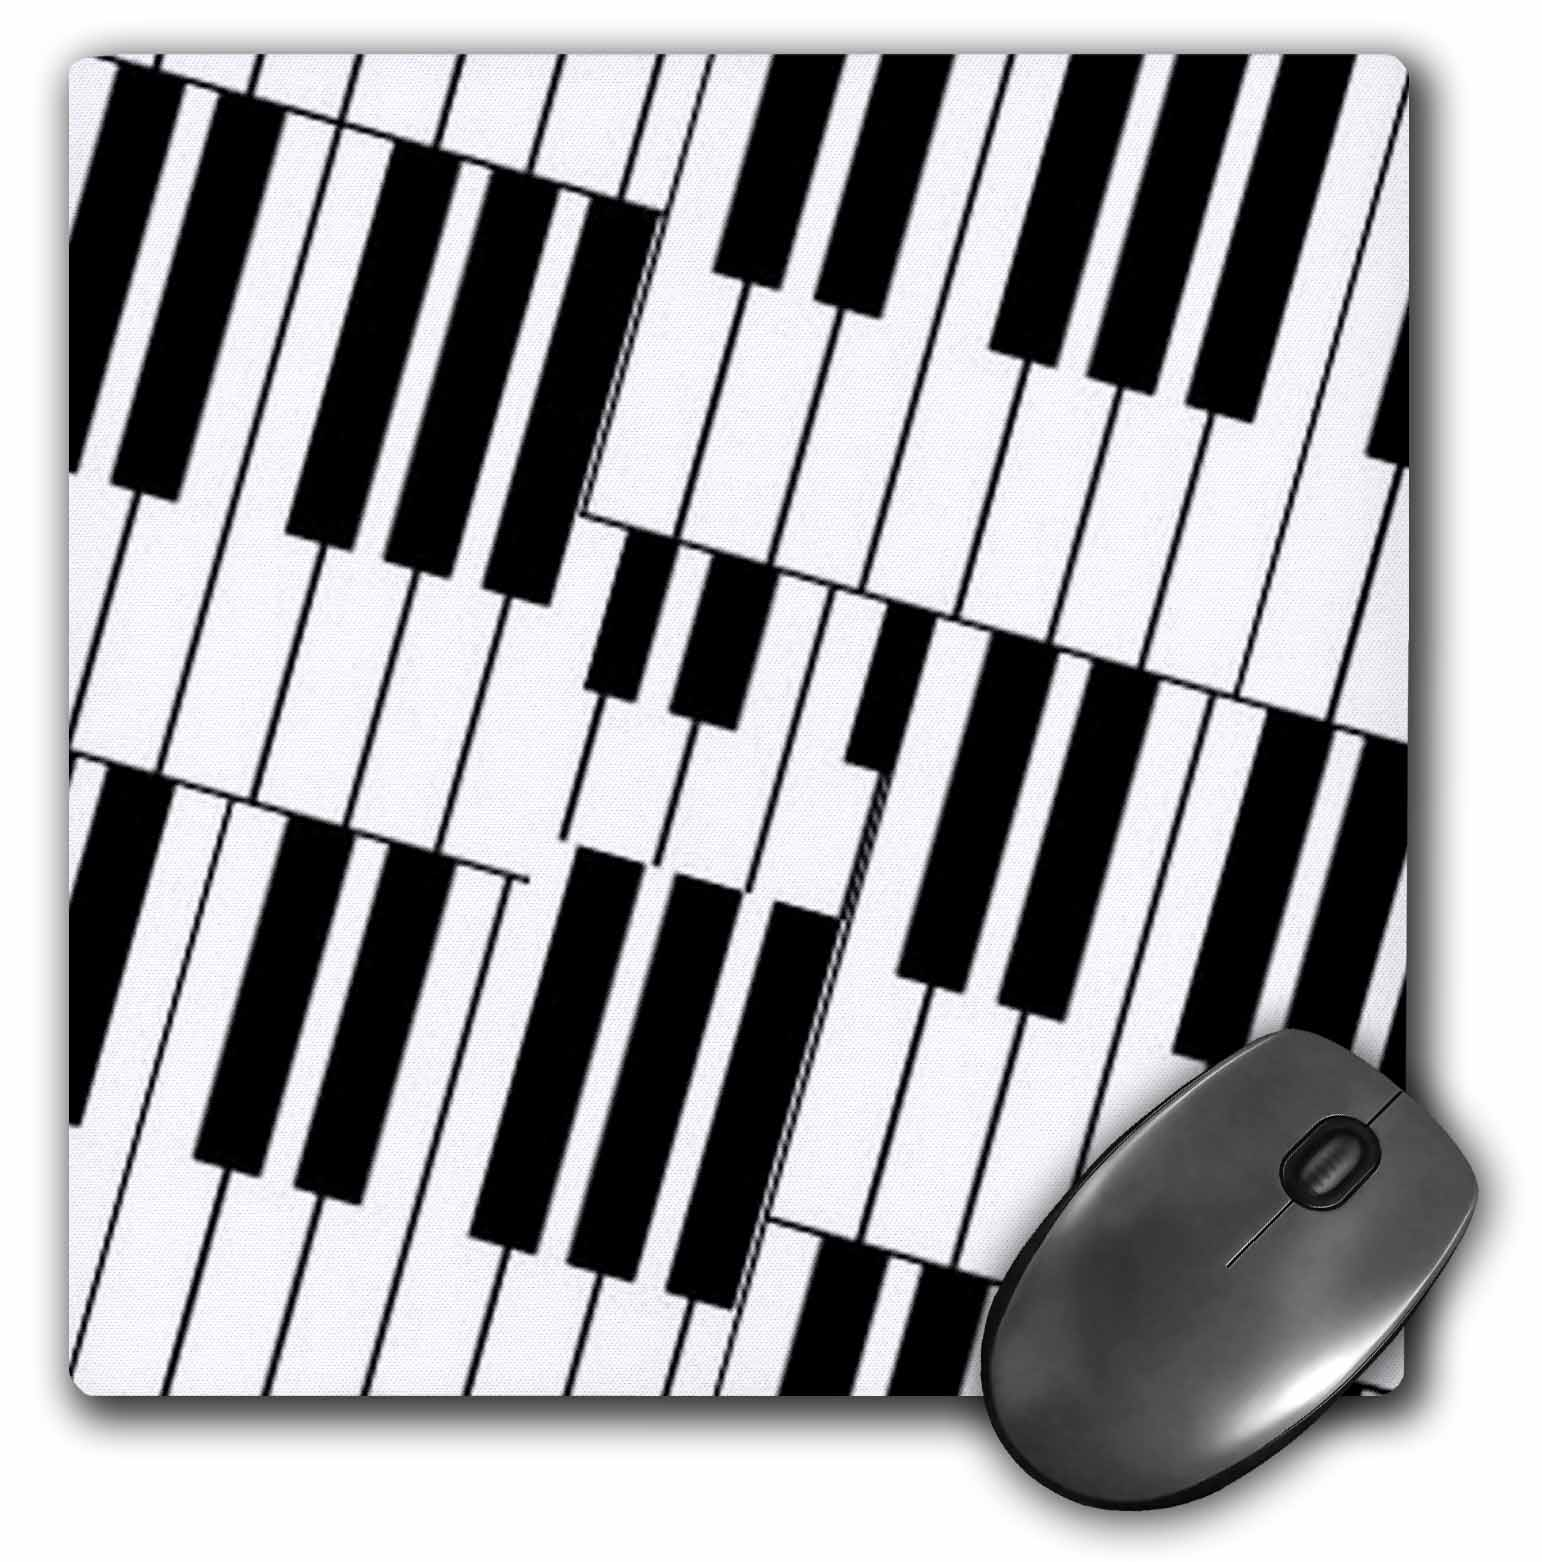 3dRose Piano Keys Background , Mouse Pad, 8 by 8 inches